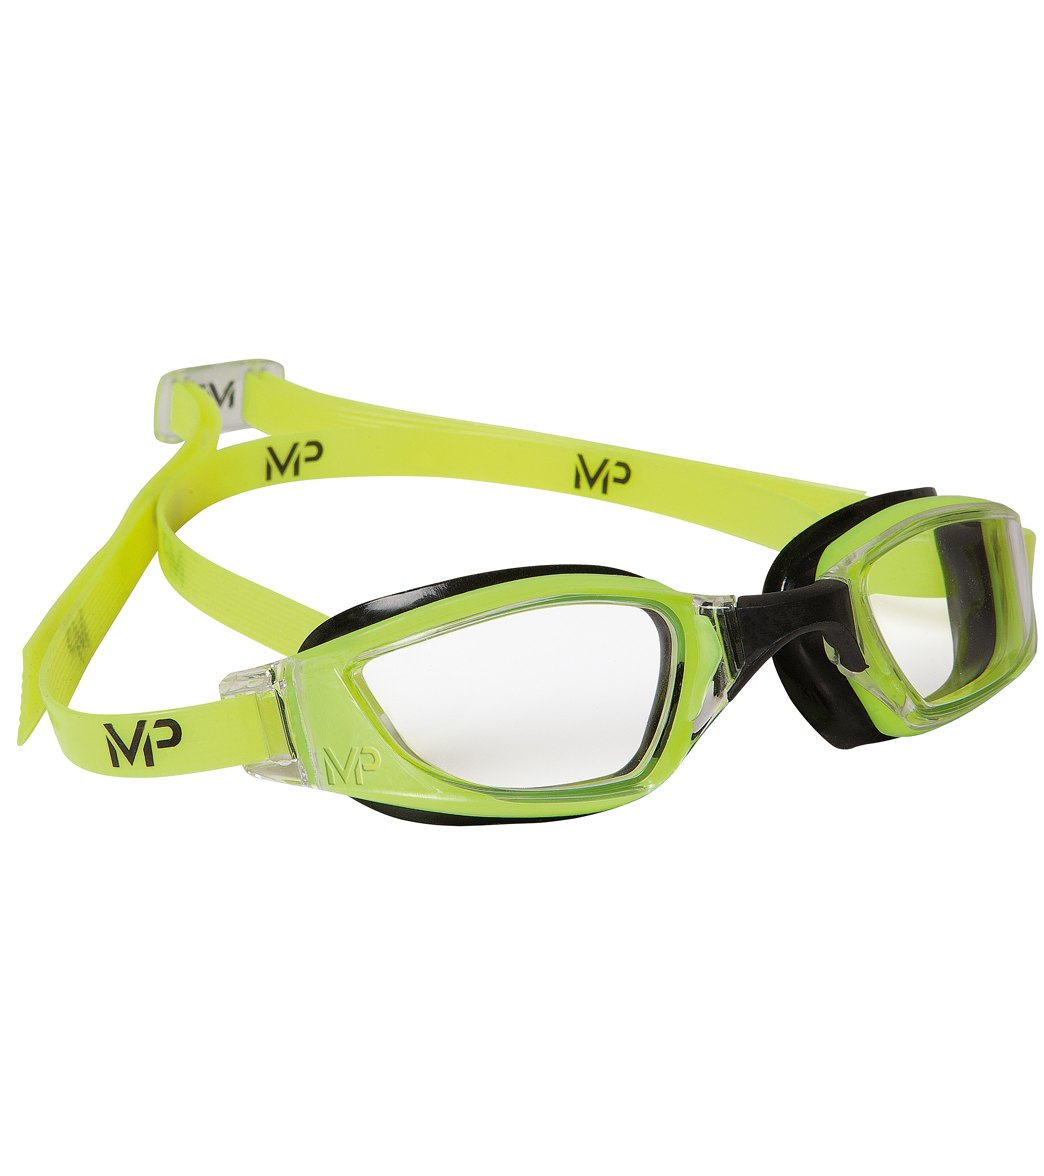 MP Michael Phelps Xceed Goggle at SwimOutlet.com 2399a41ec